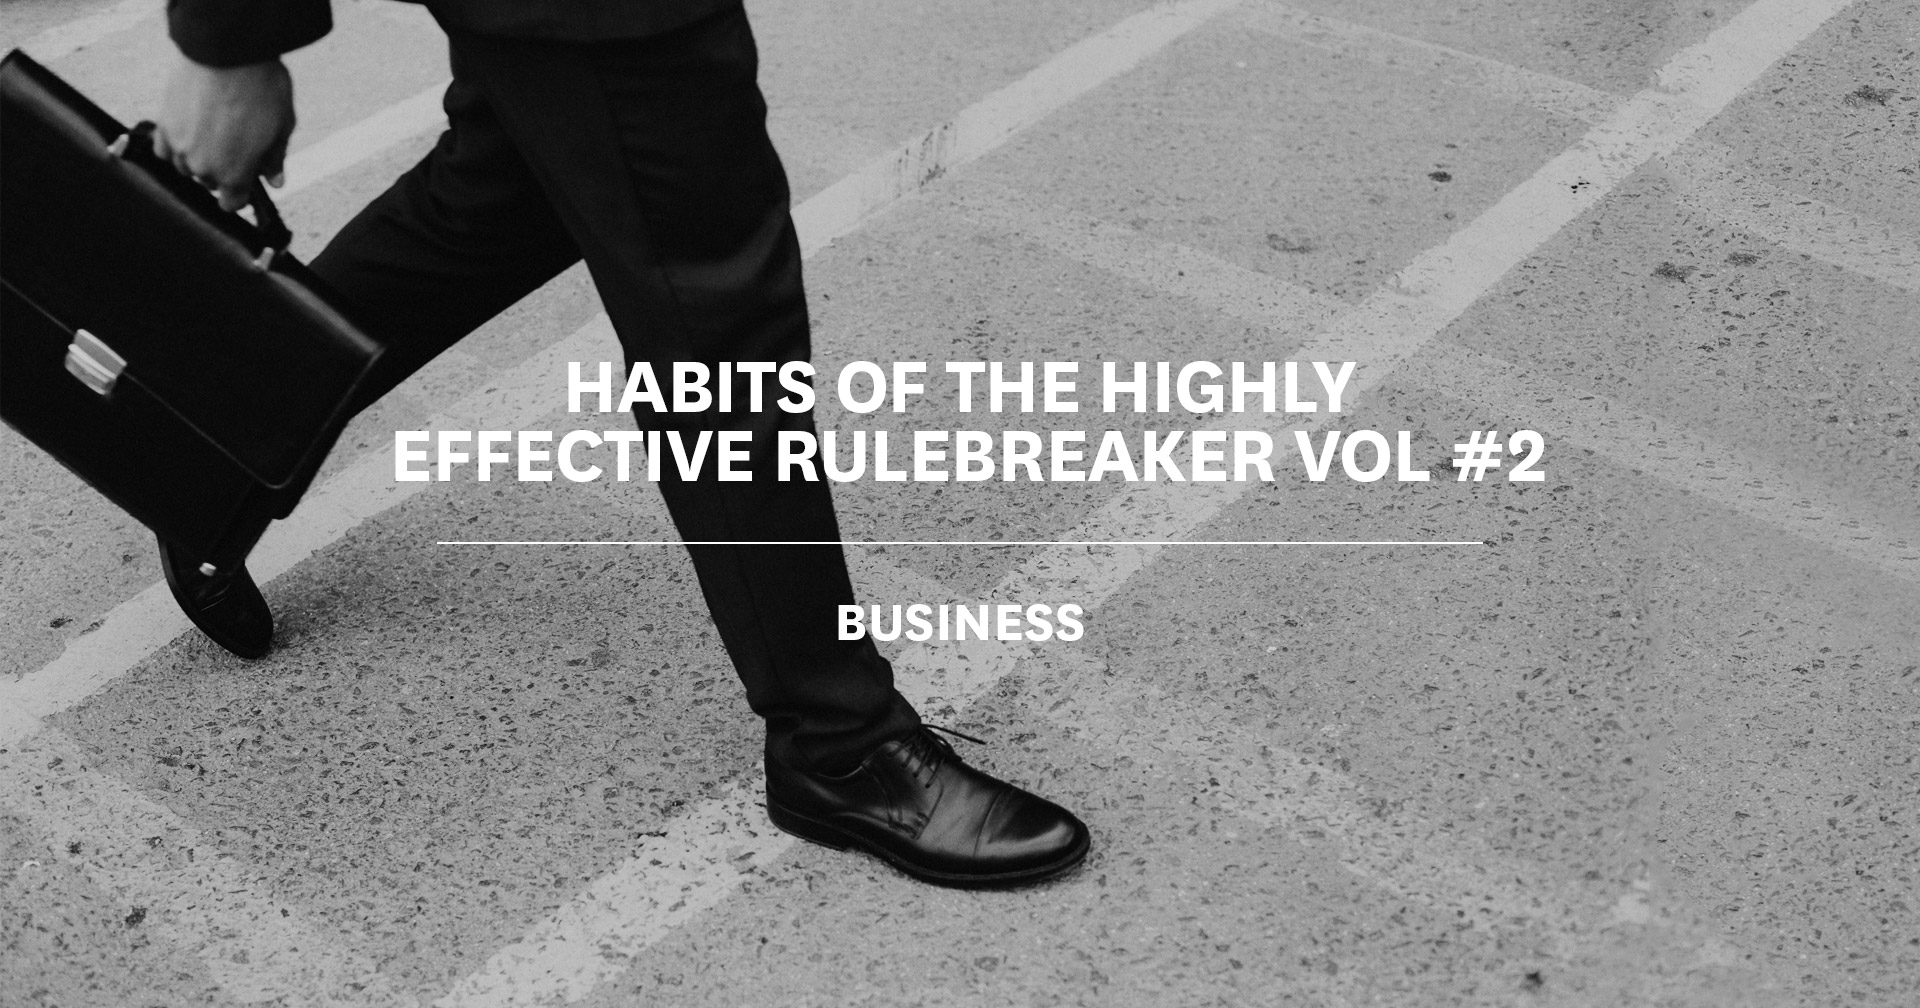 The Habits of the Highly Effective Rulebreaker Vol #2: Business